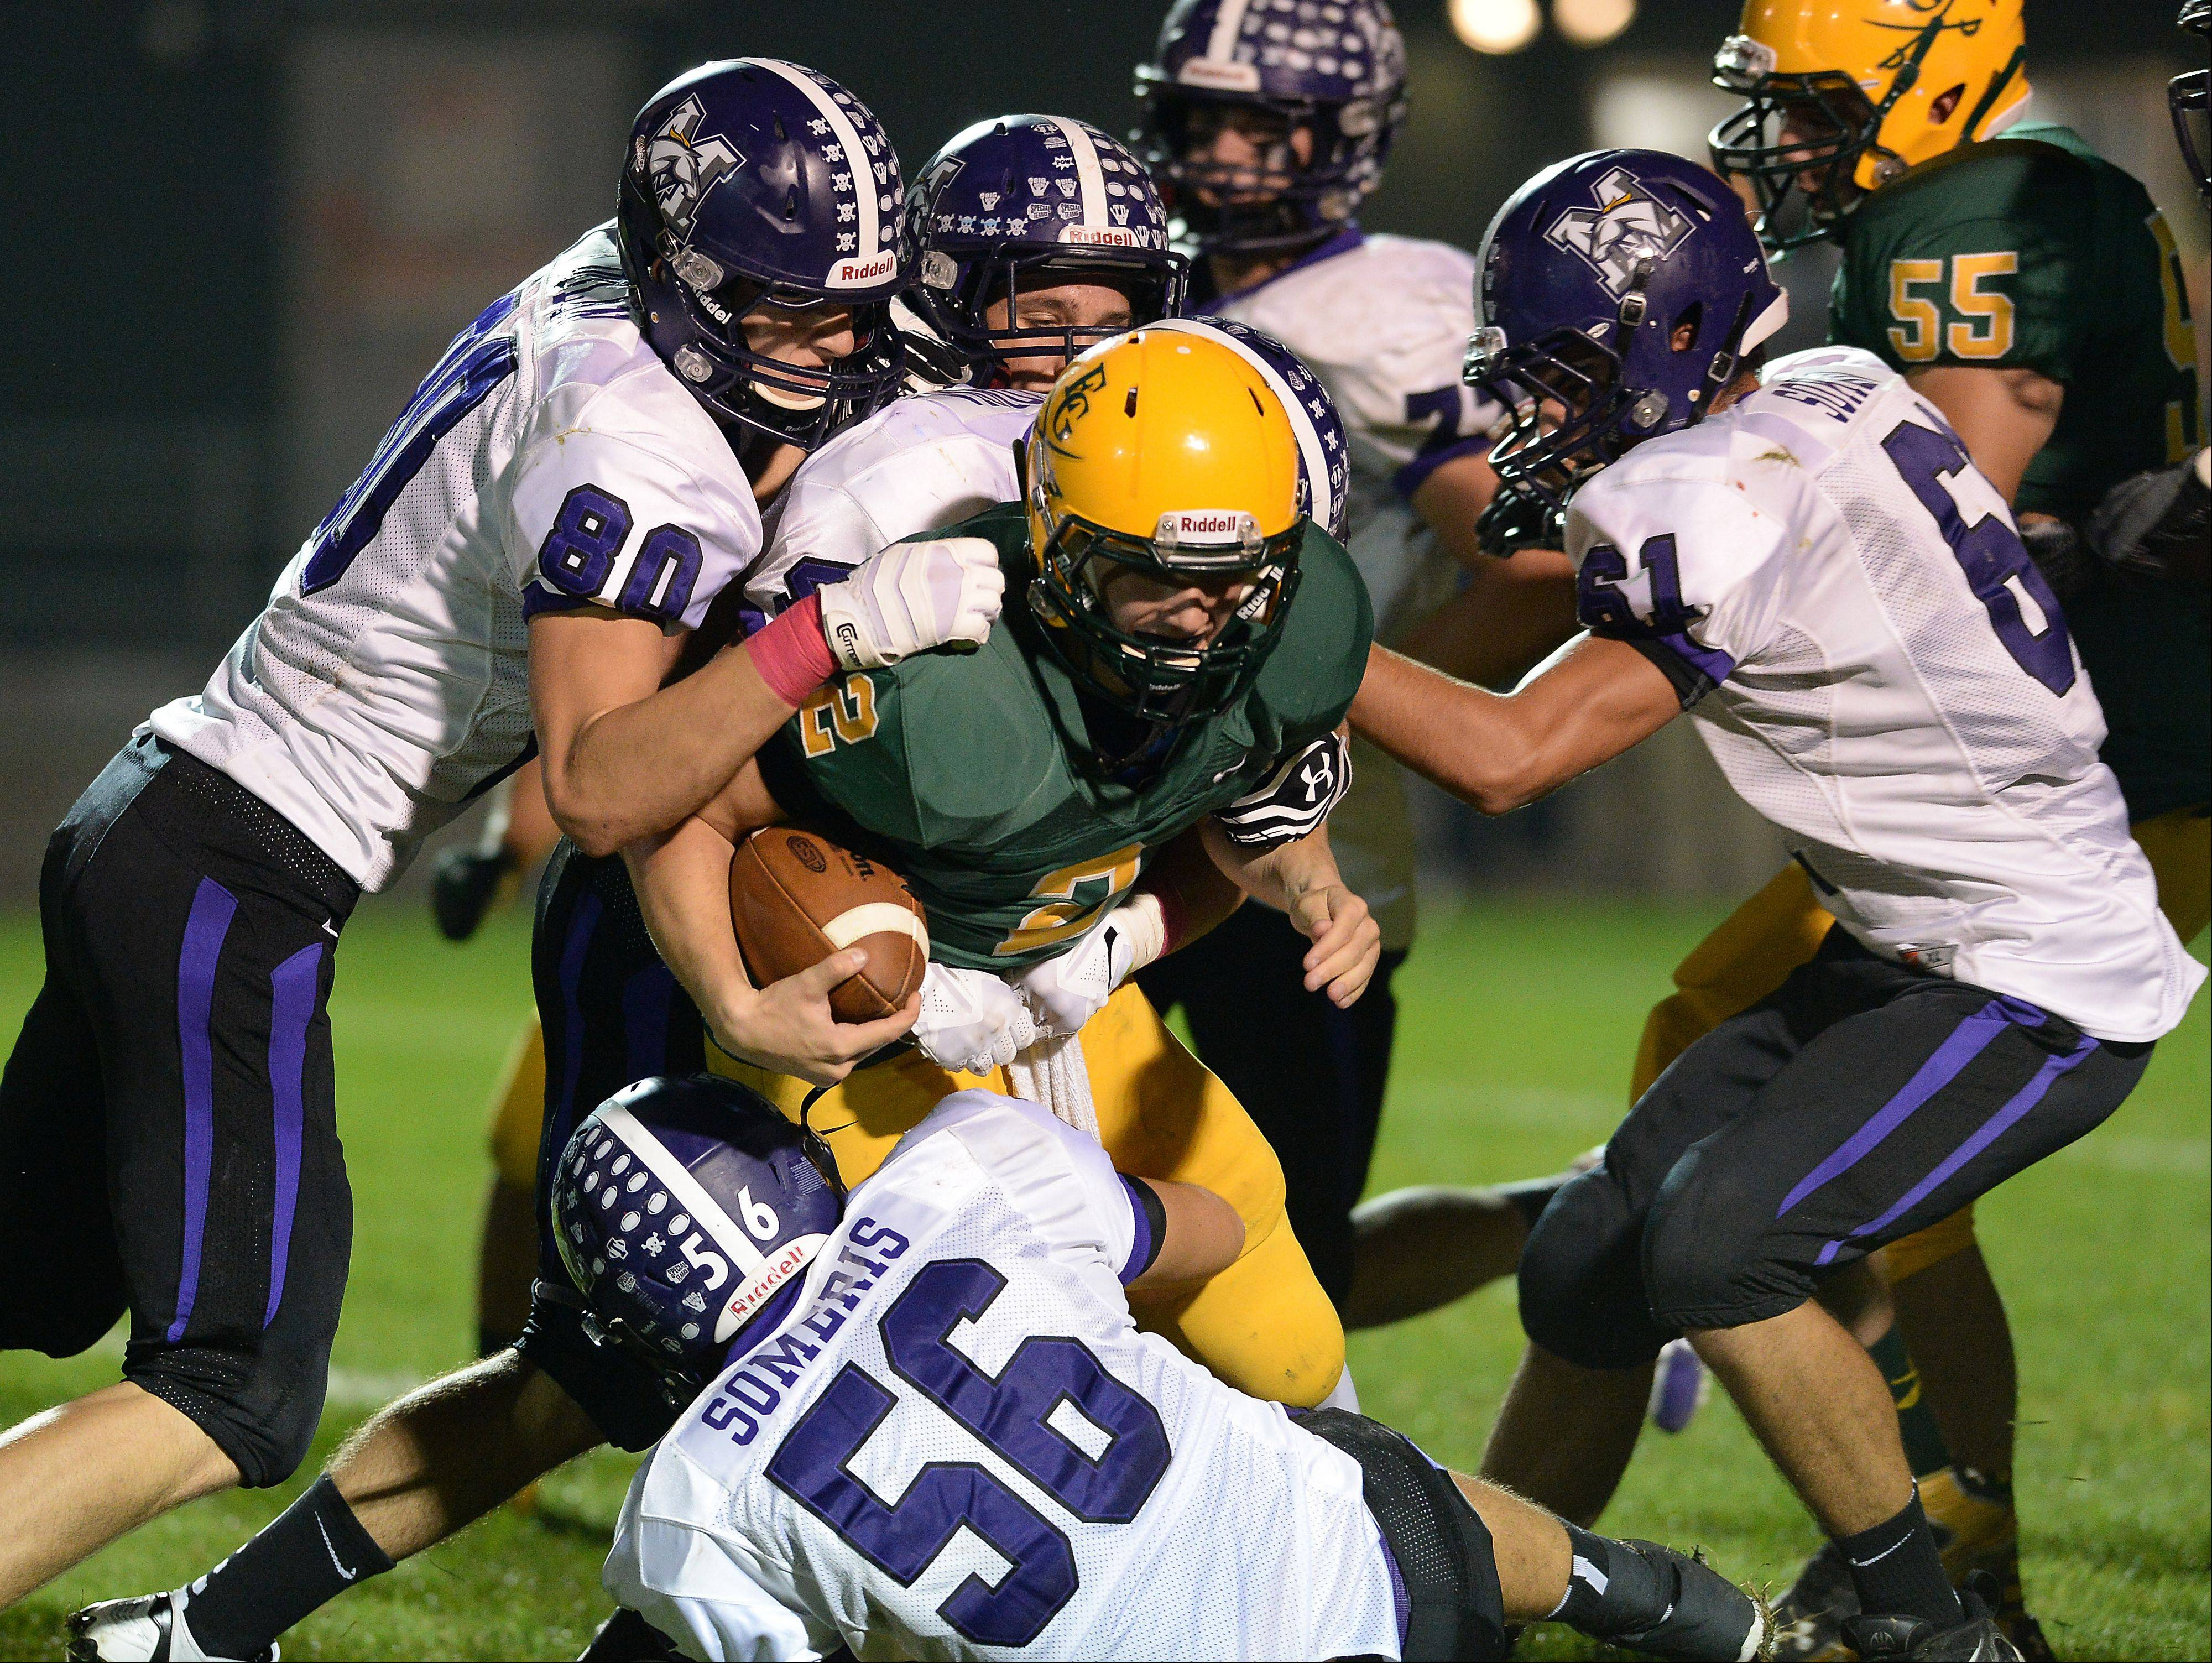 Elk Grove�s Adam O�Malley goes up against Rolling Meadows�s Matt Dolan and the rest of the defense as he is tackled in the second quarter.